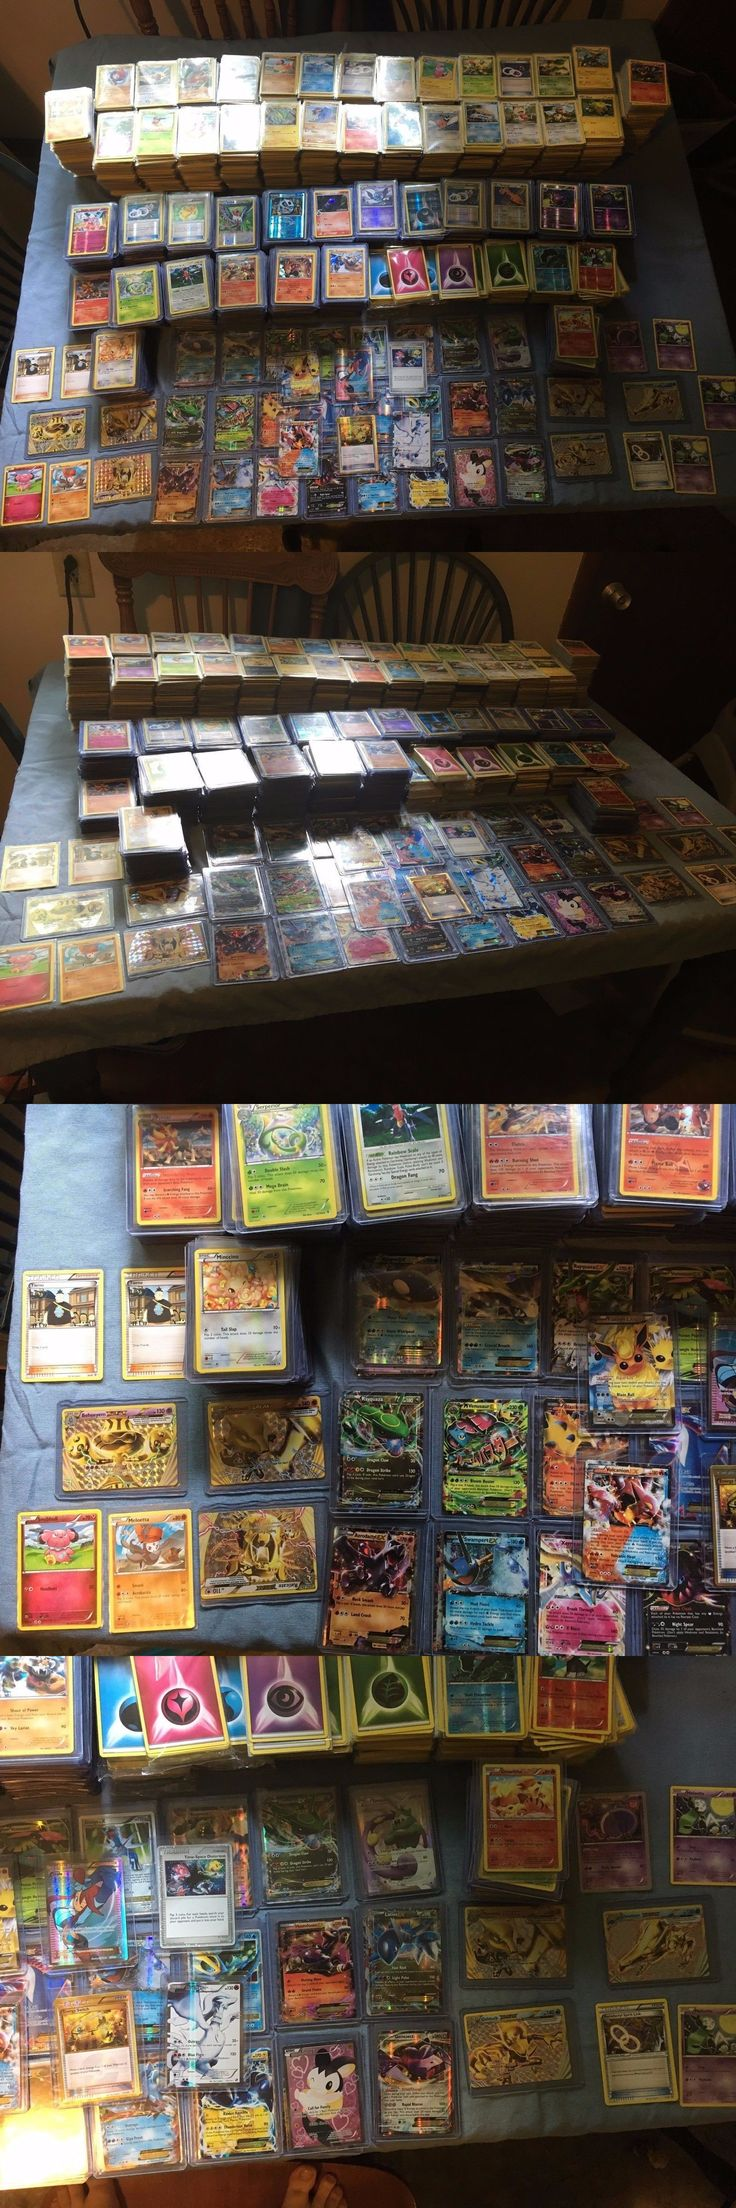 Pok mon Mixed Card Lots 104049: Huge Pokemon Card Lot (Over 9000 Cards!) -> BUY IT NOW ONLY: $1800 on eBay!